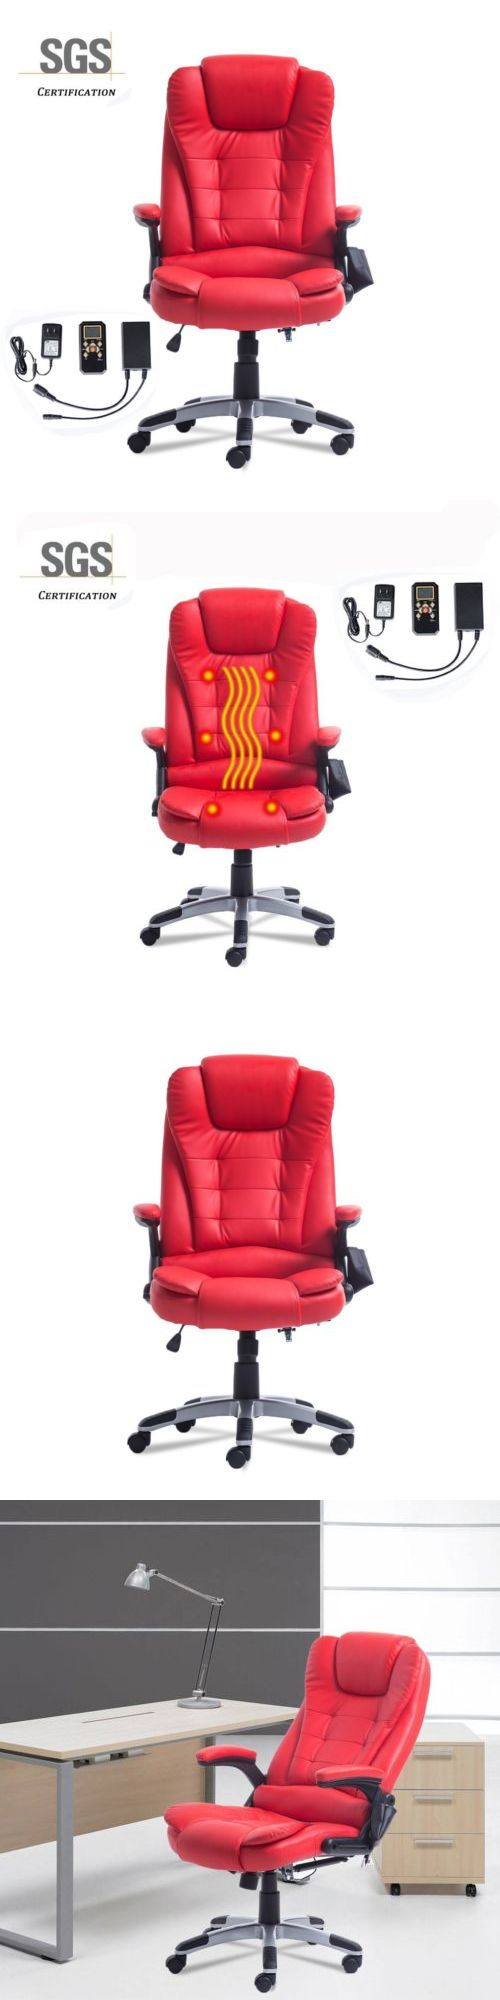 Wood swivel desk chair laquered finish warms amp padded seat ebay - Electric Massage Chairs Red Executive Office Chair Heavy People Bad Backs Heated Vibrating Massaging New